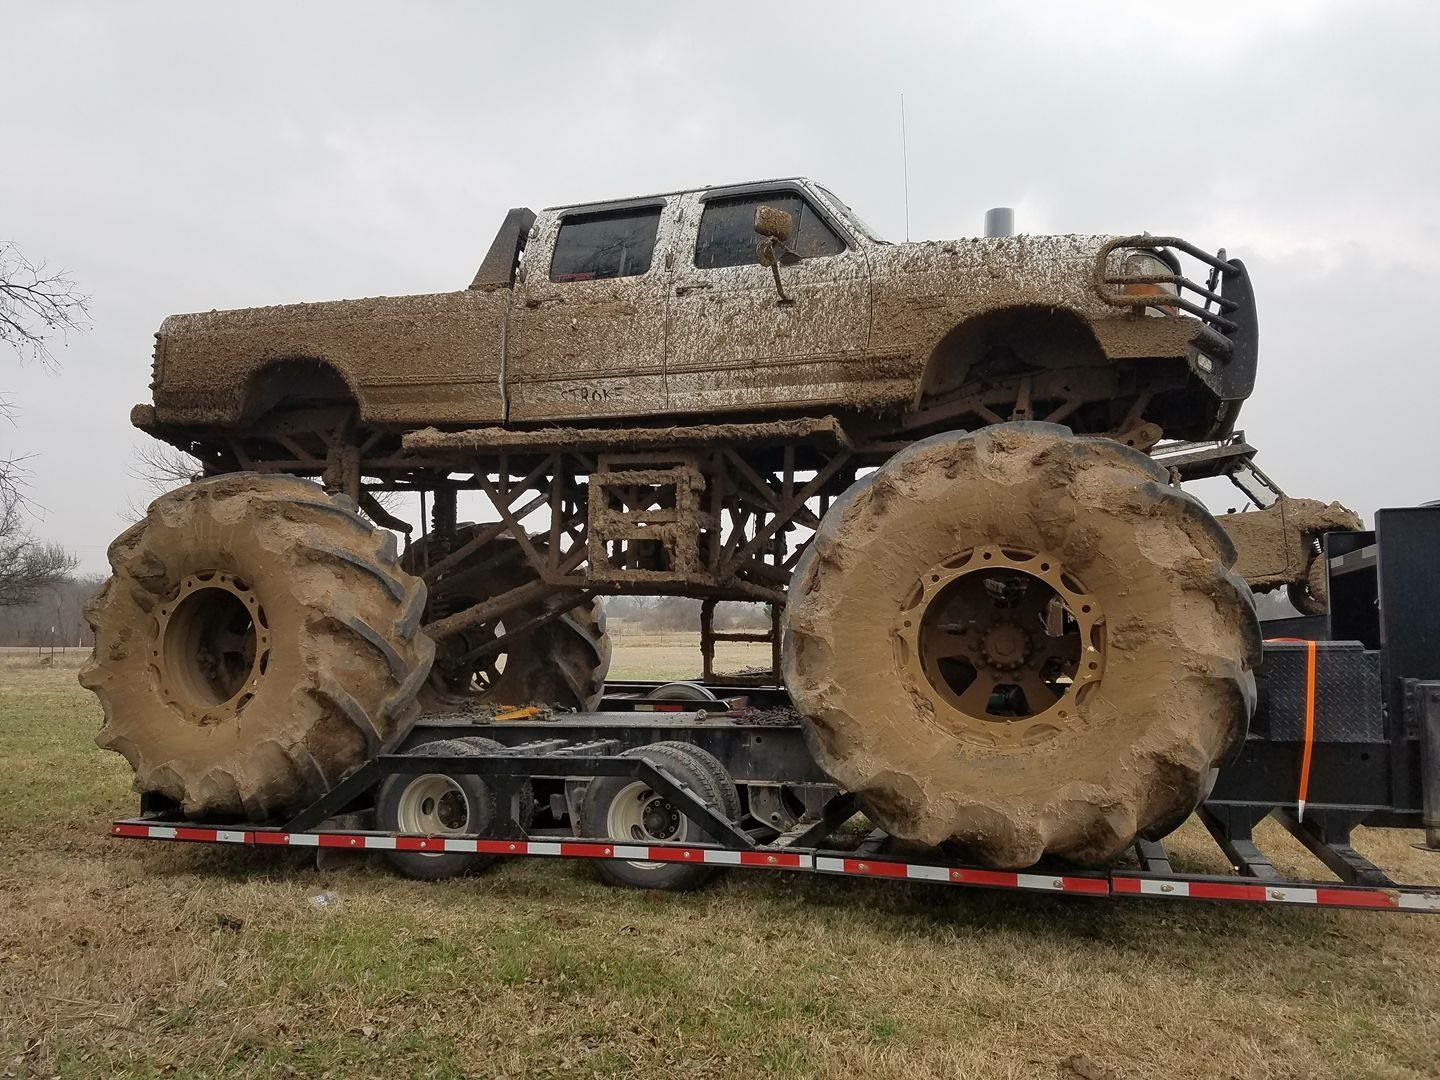 Ford F 350 Mud Monster Truck Mud Trucks Muddy Trucks Big Monster Trucks